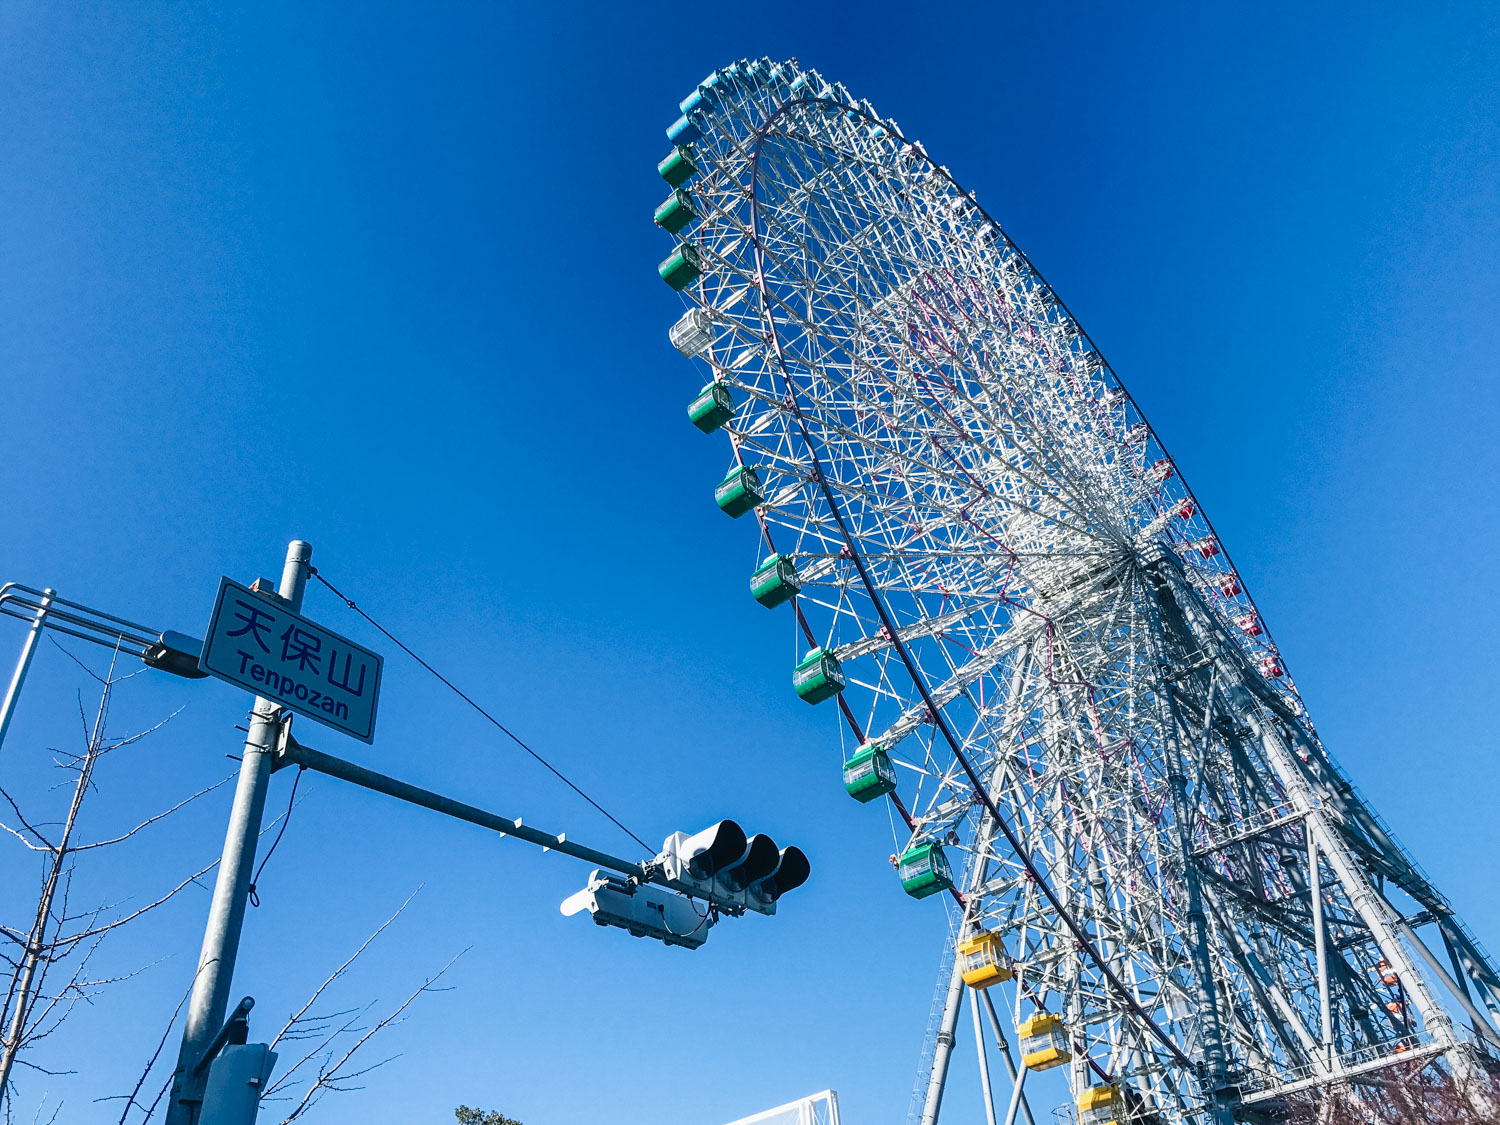 Osaka-Aquarium-Kaiyukan-Tempozan-Giant-Ferris-Wheel-osaka-japan-darrenbloggie